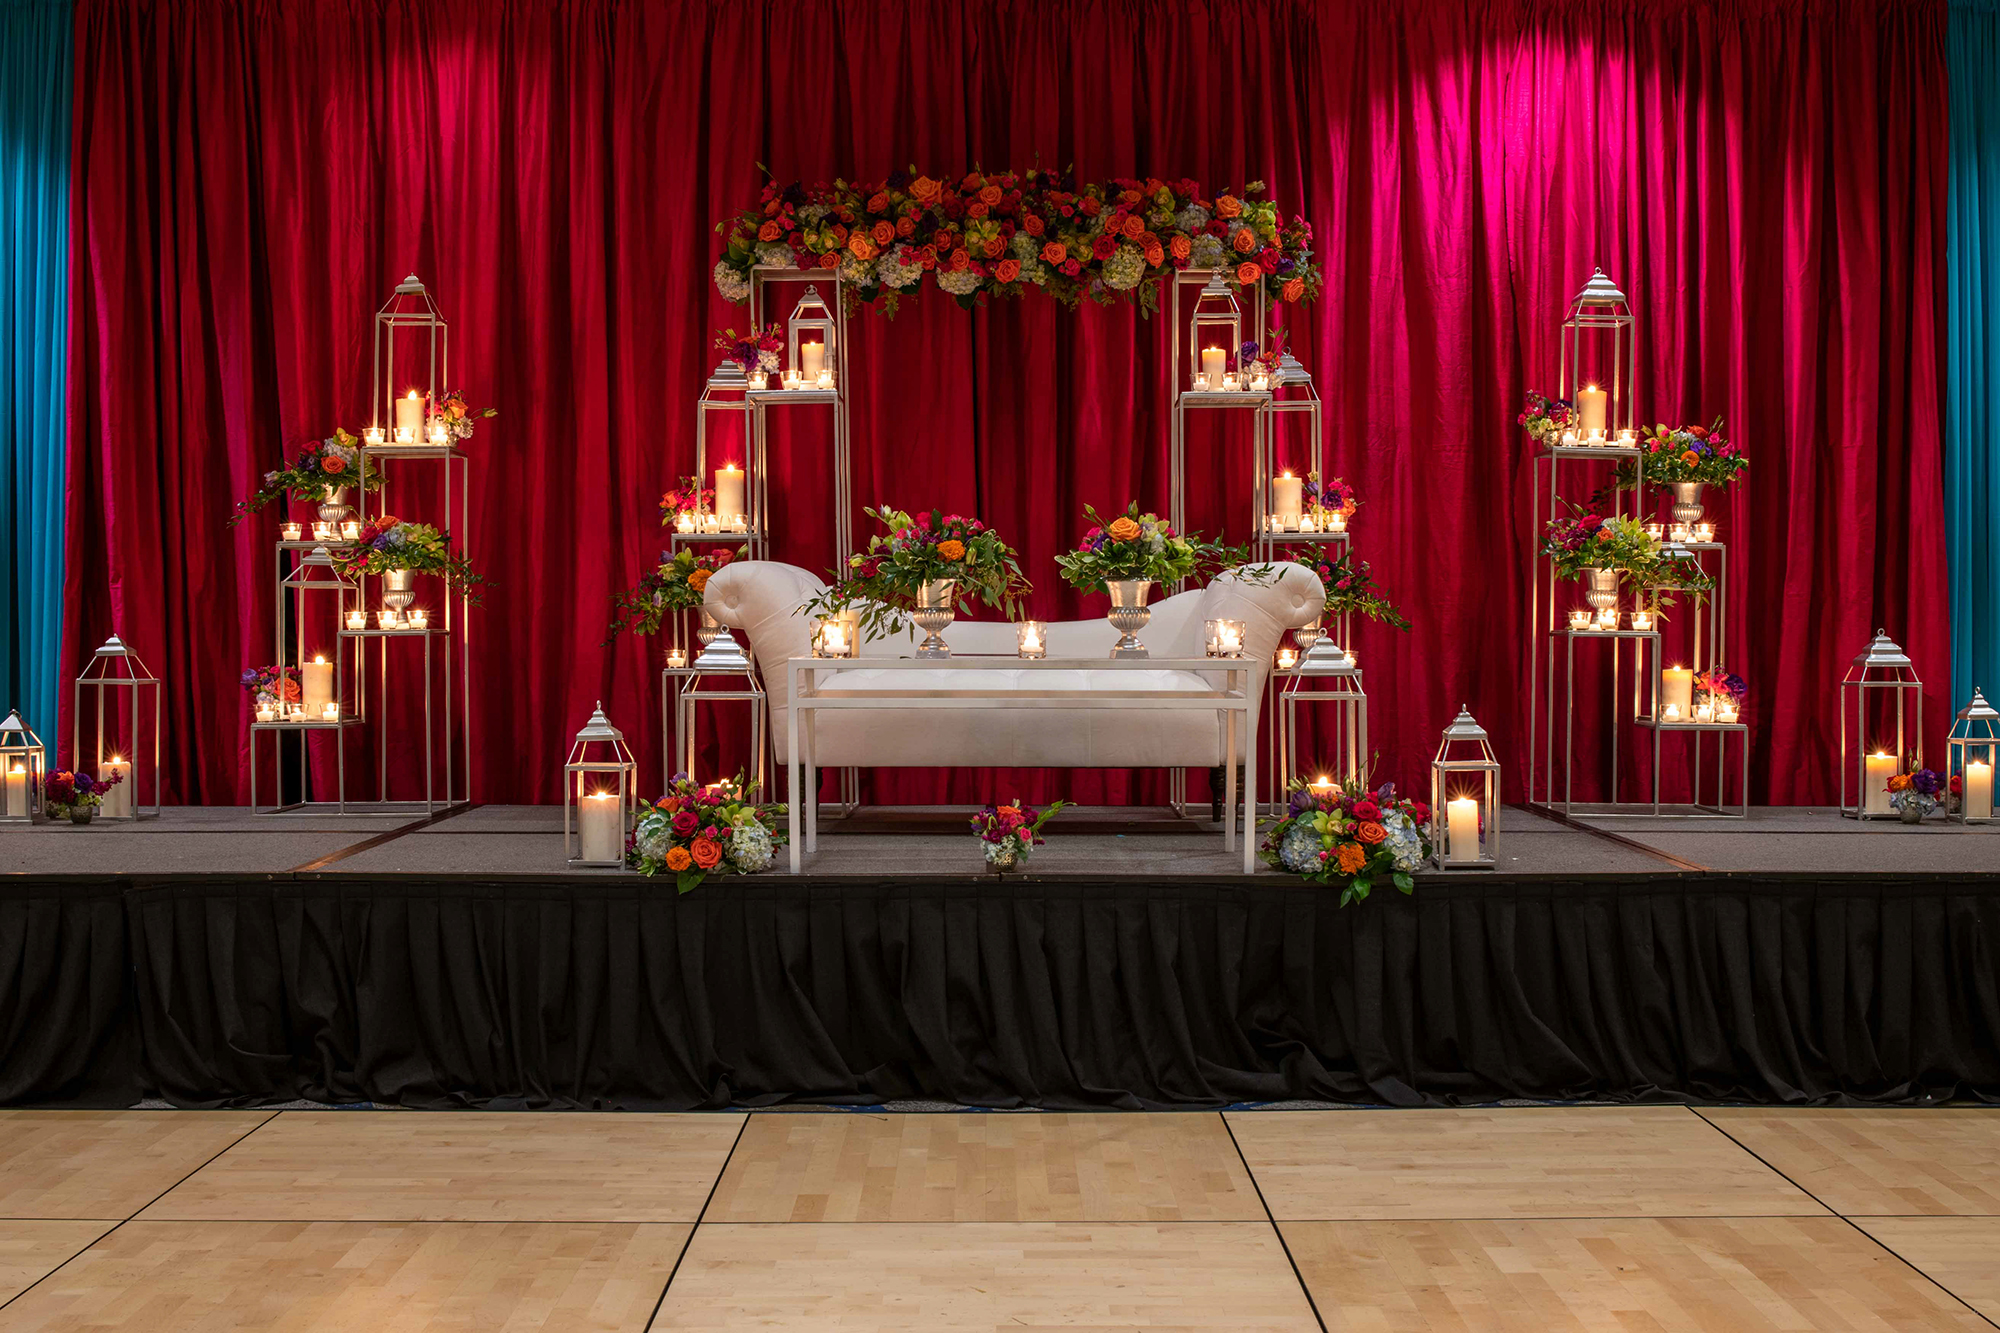 Hilton_Bellevue_Meeting_Grand_Ballroom_Wedding-0014.jpg